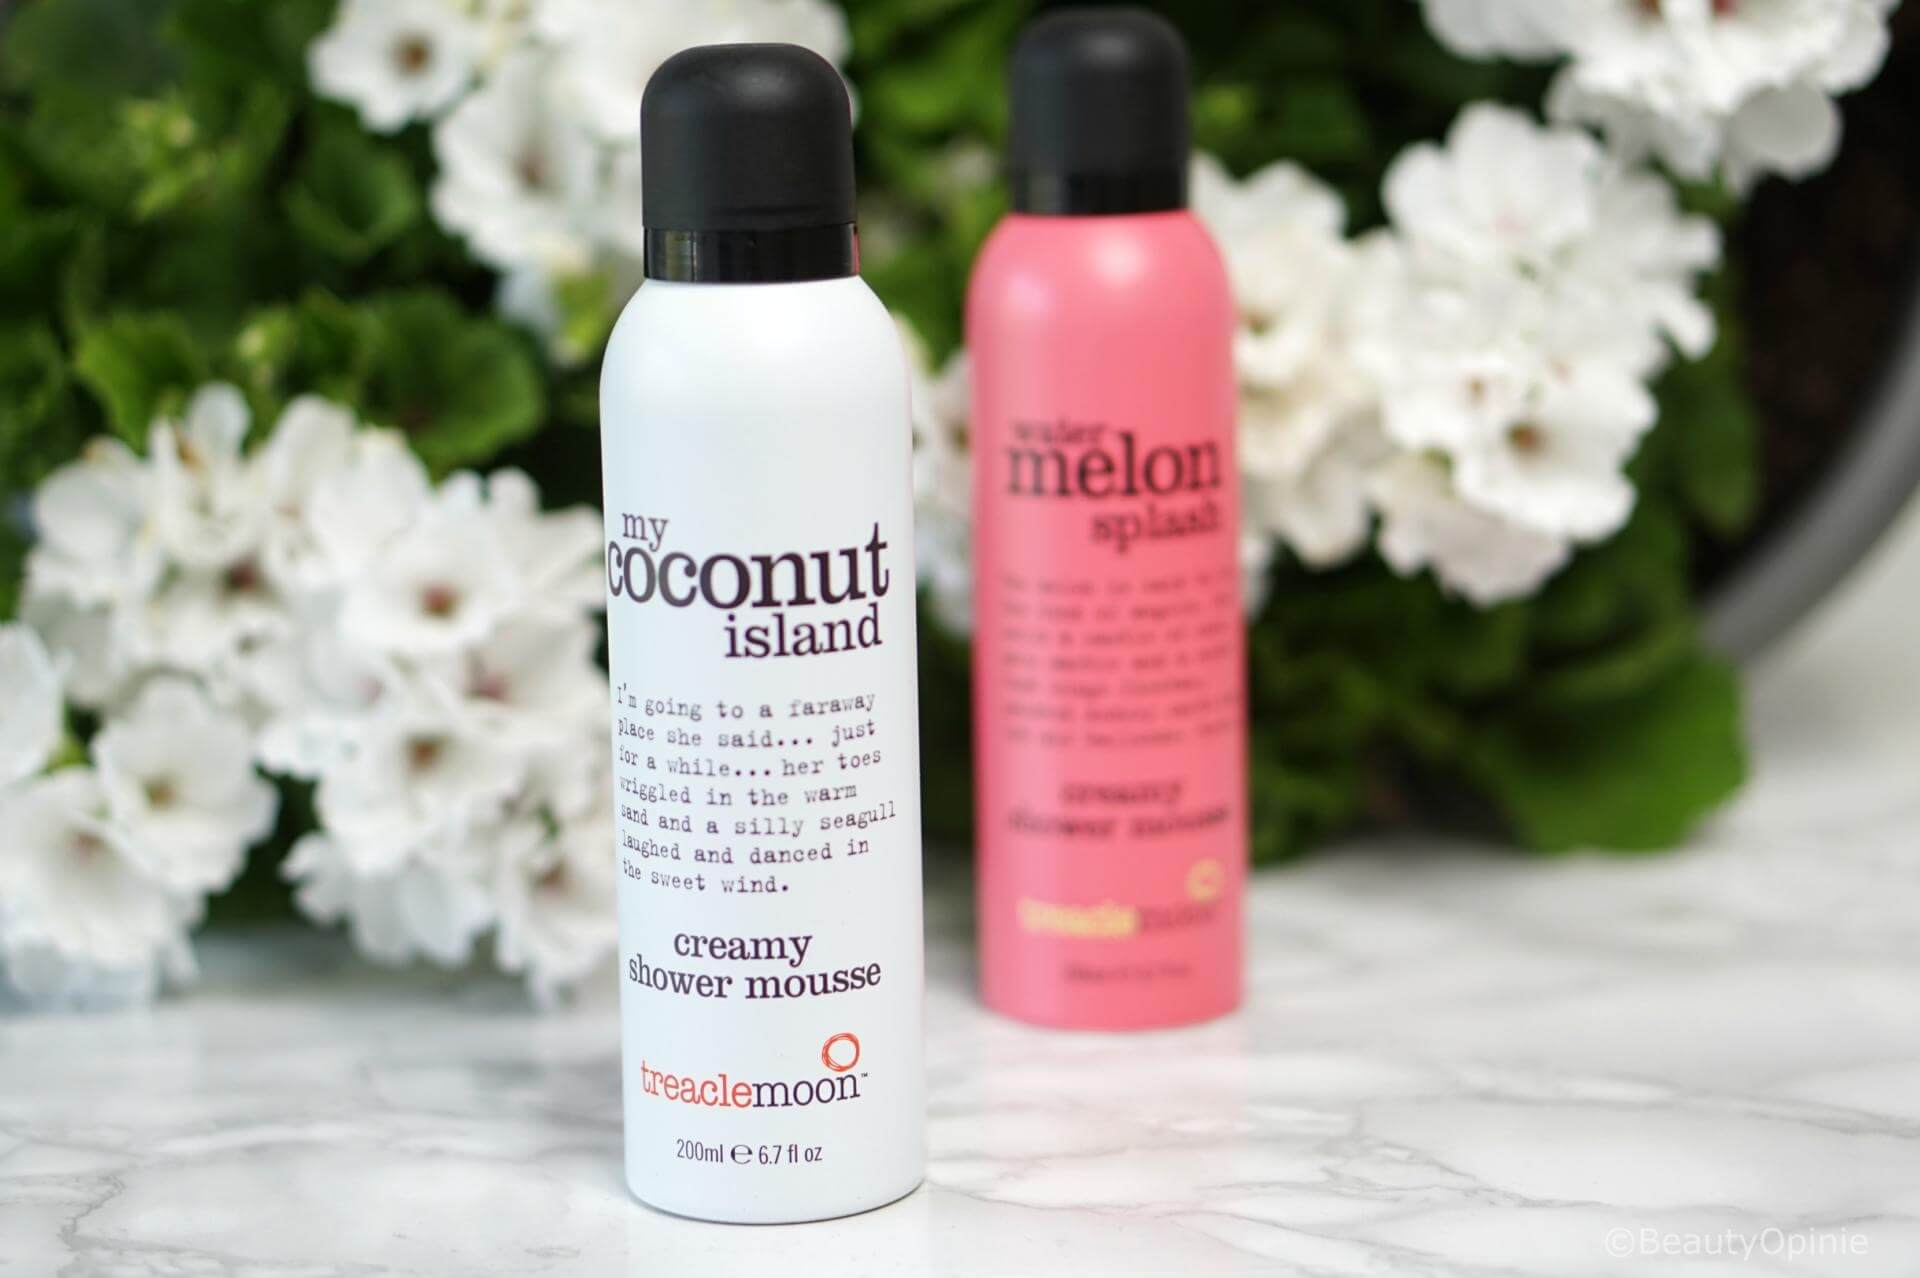 My Cocunut Heaven' Creamy Shower Mousse